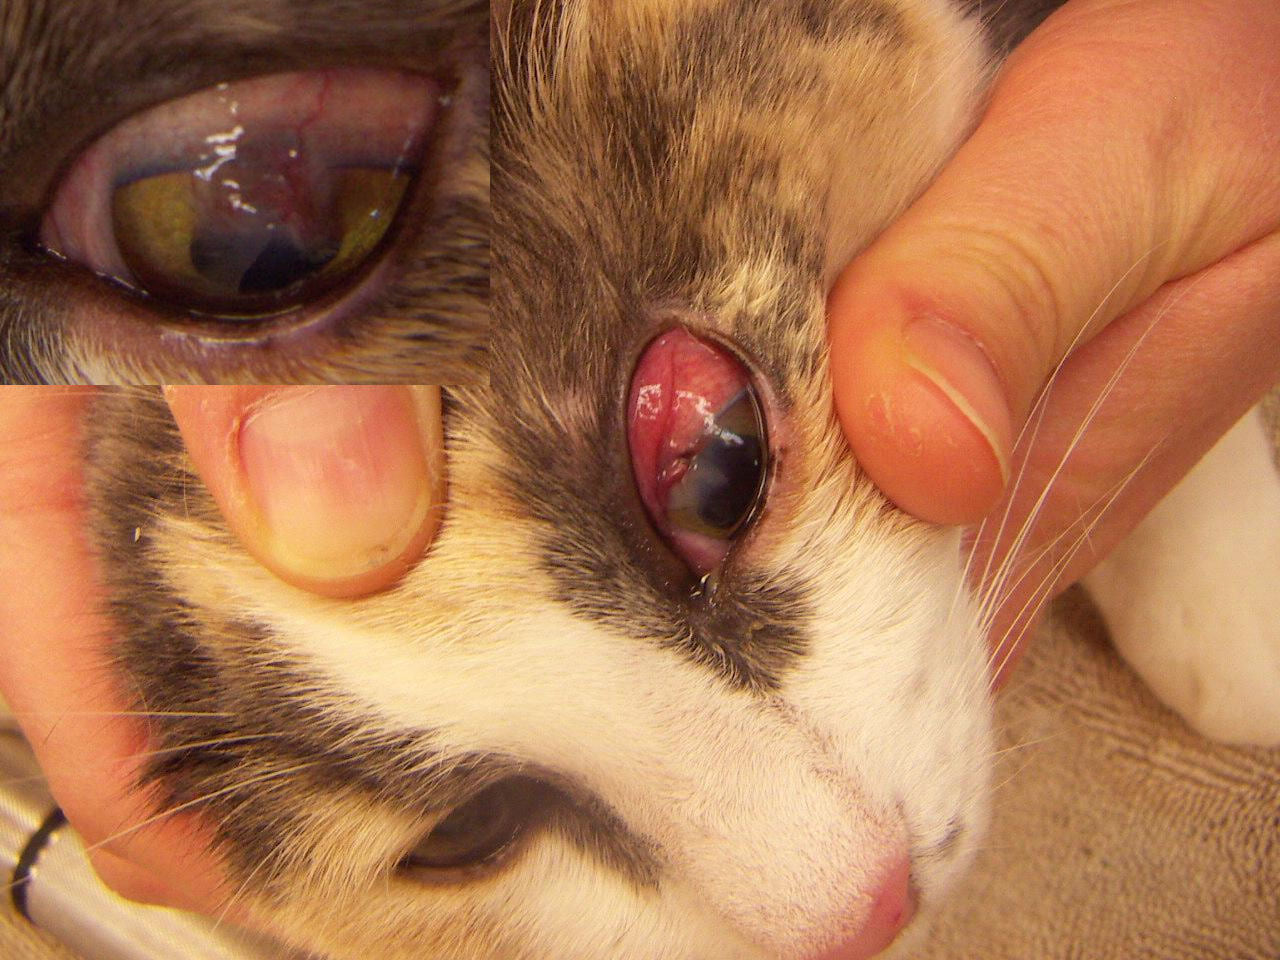 will a cat ear hematoma go away on its own